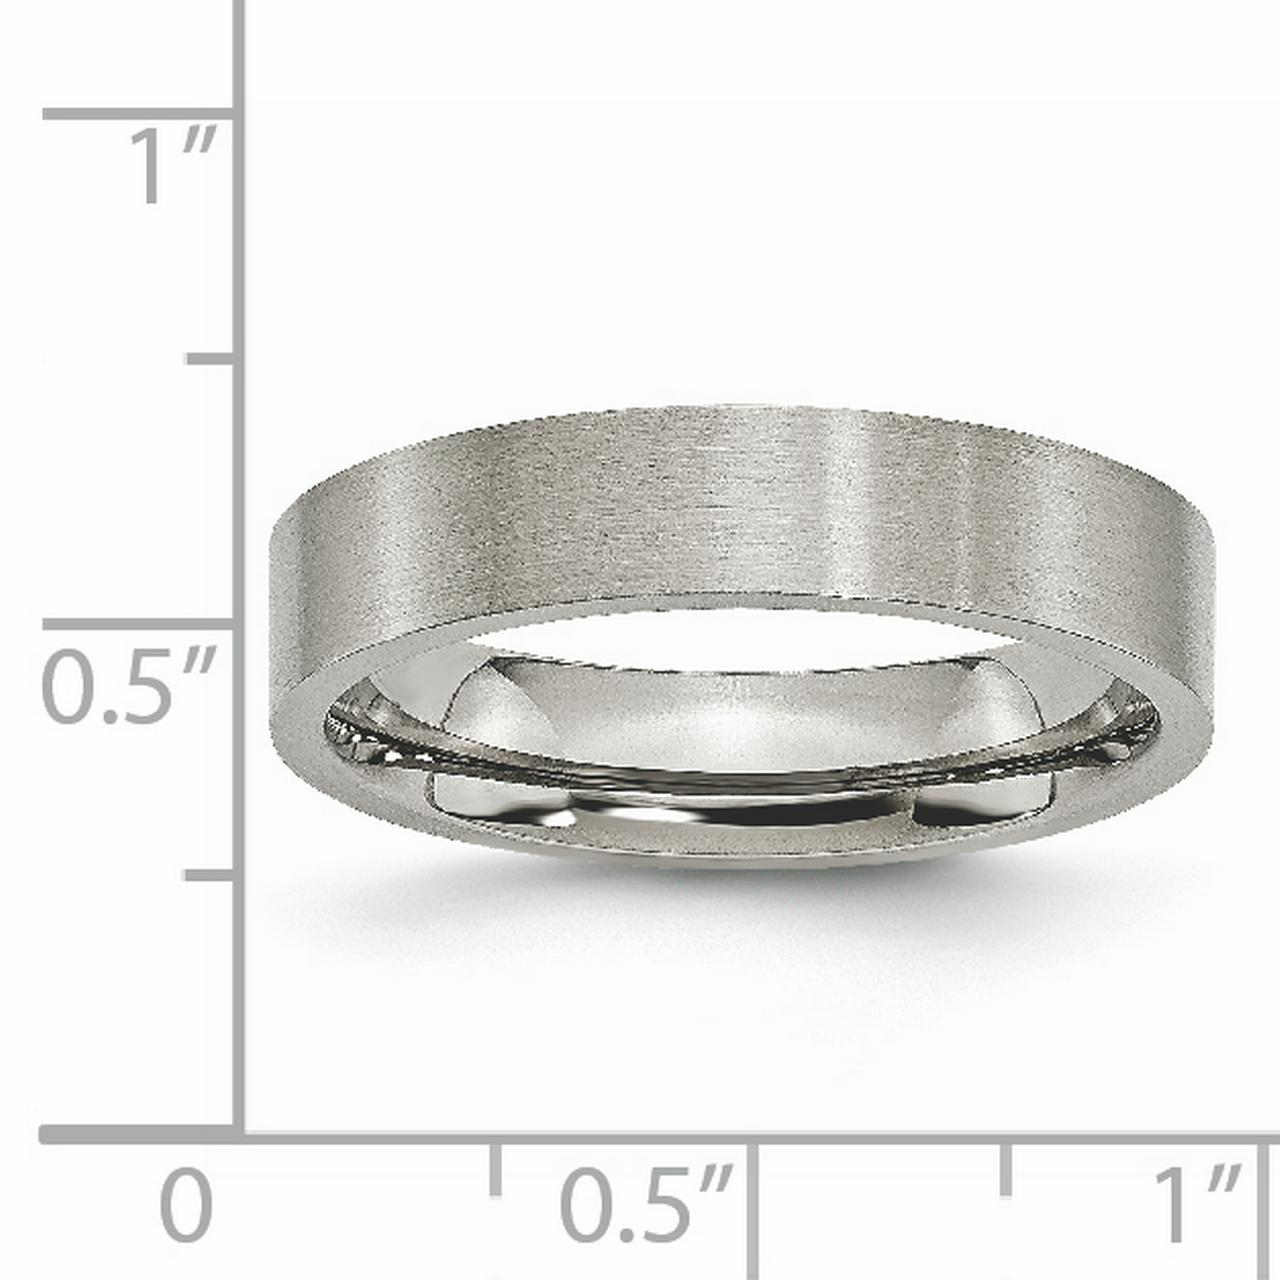 Titanium Flat 5mm Brushed Wedding Ring Band Size 10.00 Classic Fashion Jewelry Gifts For Women For Her - image 5 of 7